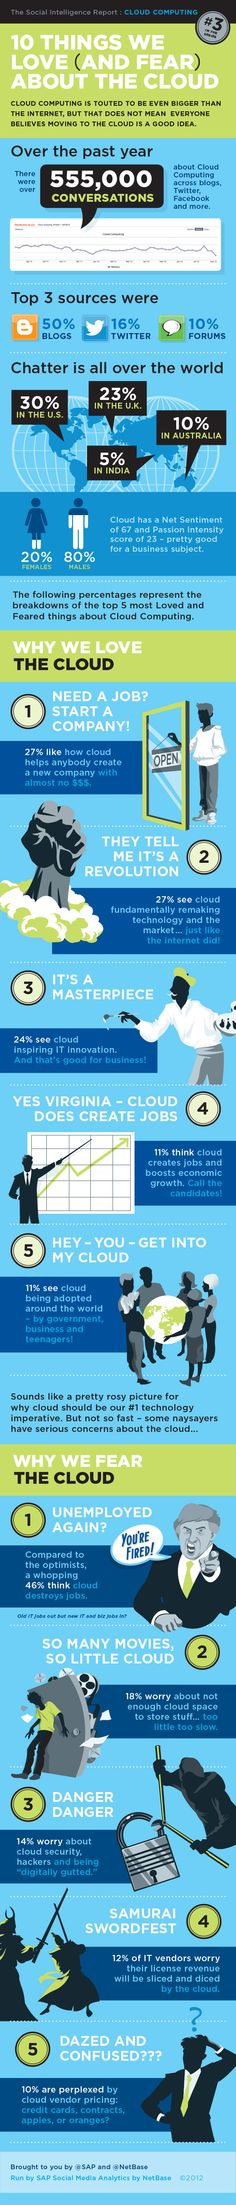 Does Cloud Create Jobs Or Destroy Them? Here's What You Told Us